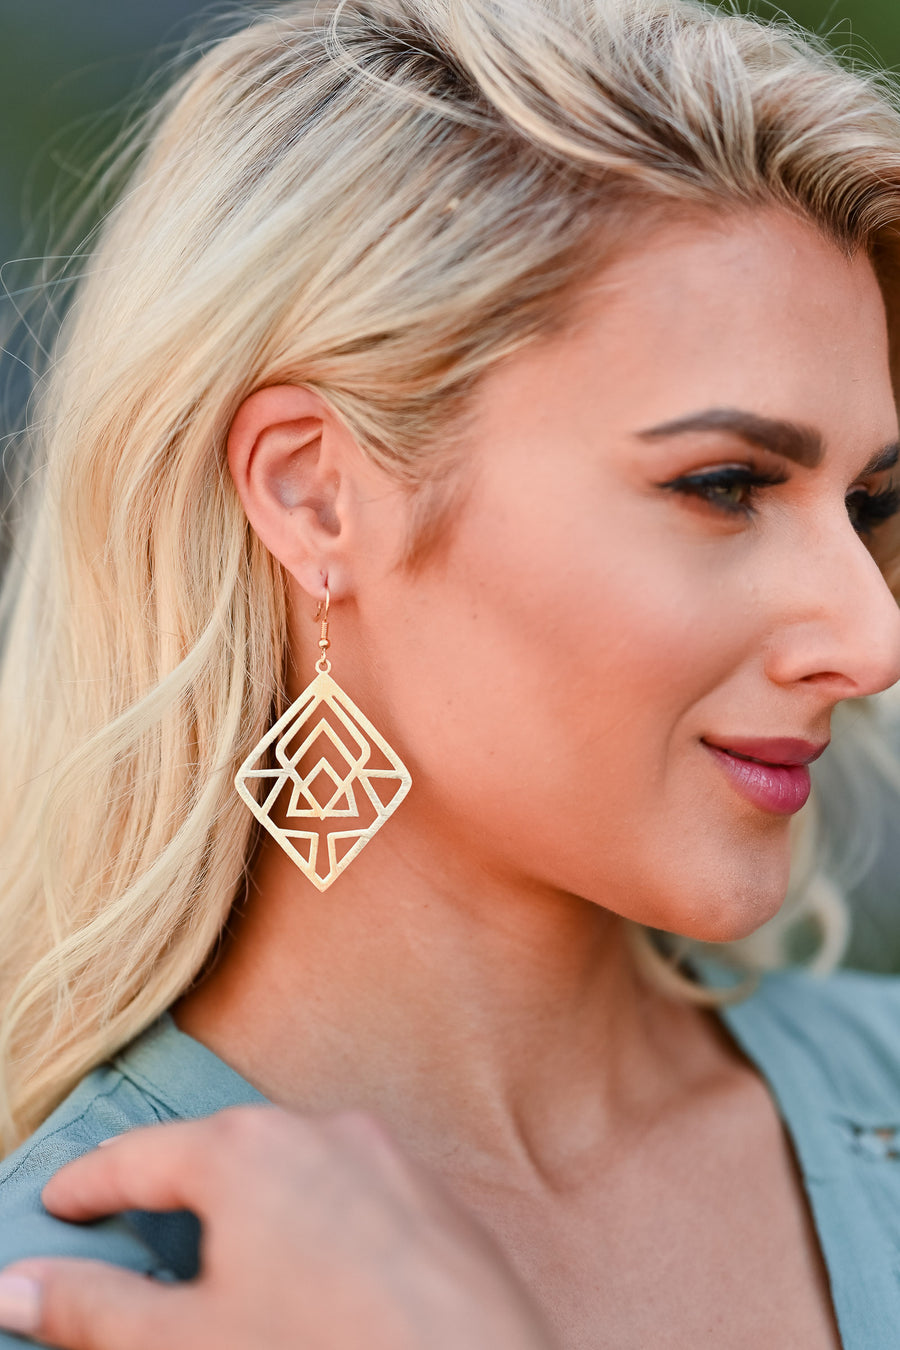 Sharp Edges Earrings - Gold womens trendy geometric diamond shape closet candy side